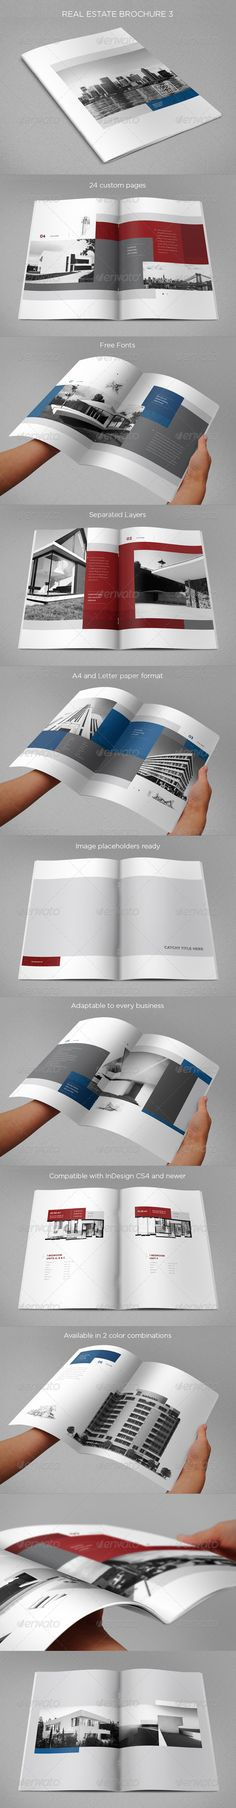 Real Estate Brochure 3 - Brochures Print Templates